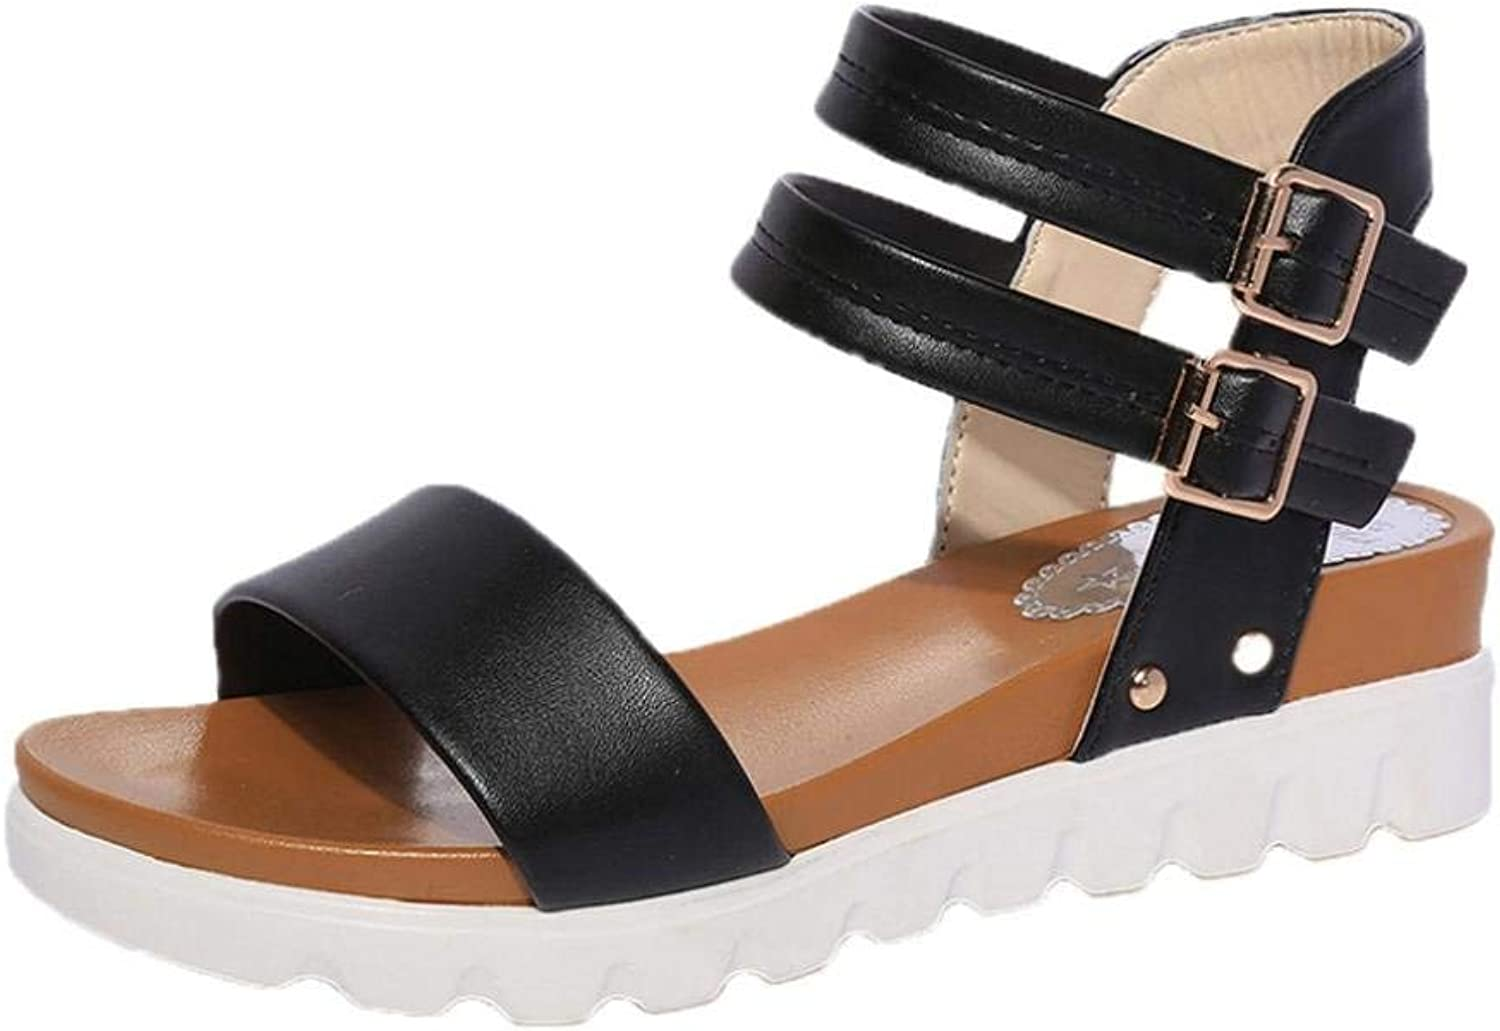 GouuoHi Womens Sandals Women Fashion Black White Sandals Summer Boom shoes Wedges Weave Middle Heel Sandals Cosy Leisure Wild Casual Quality Super Elegant for Womens